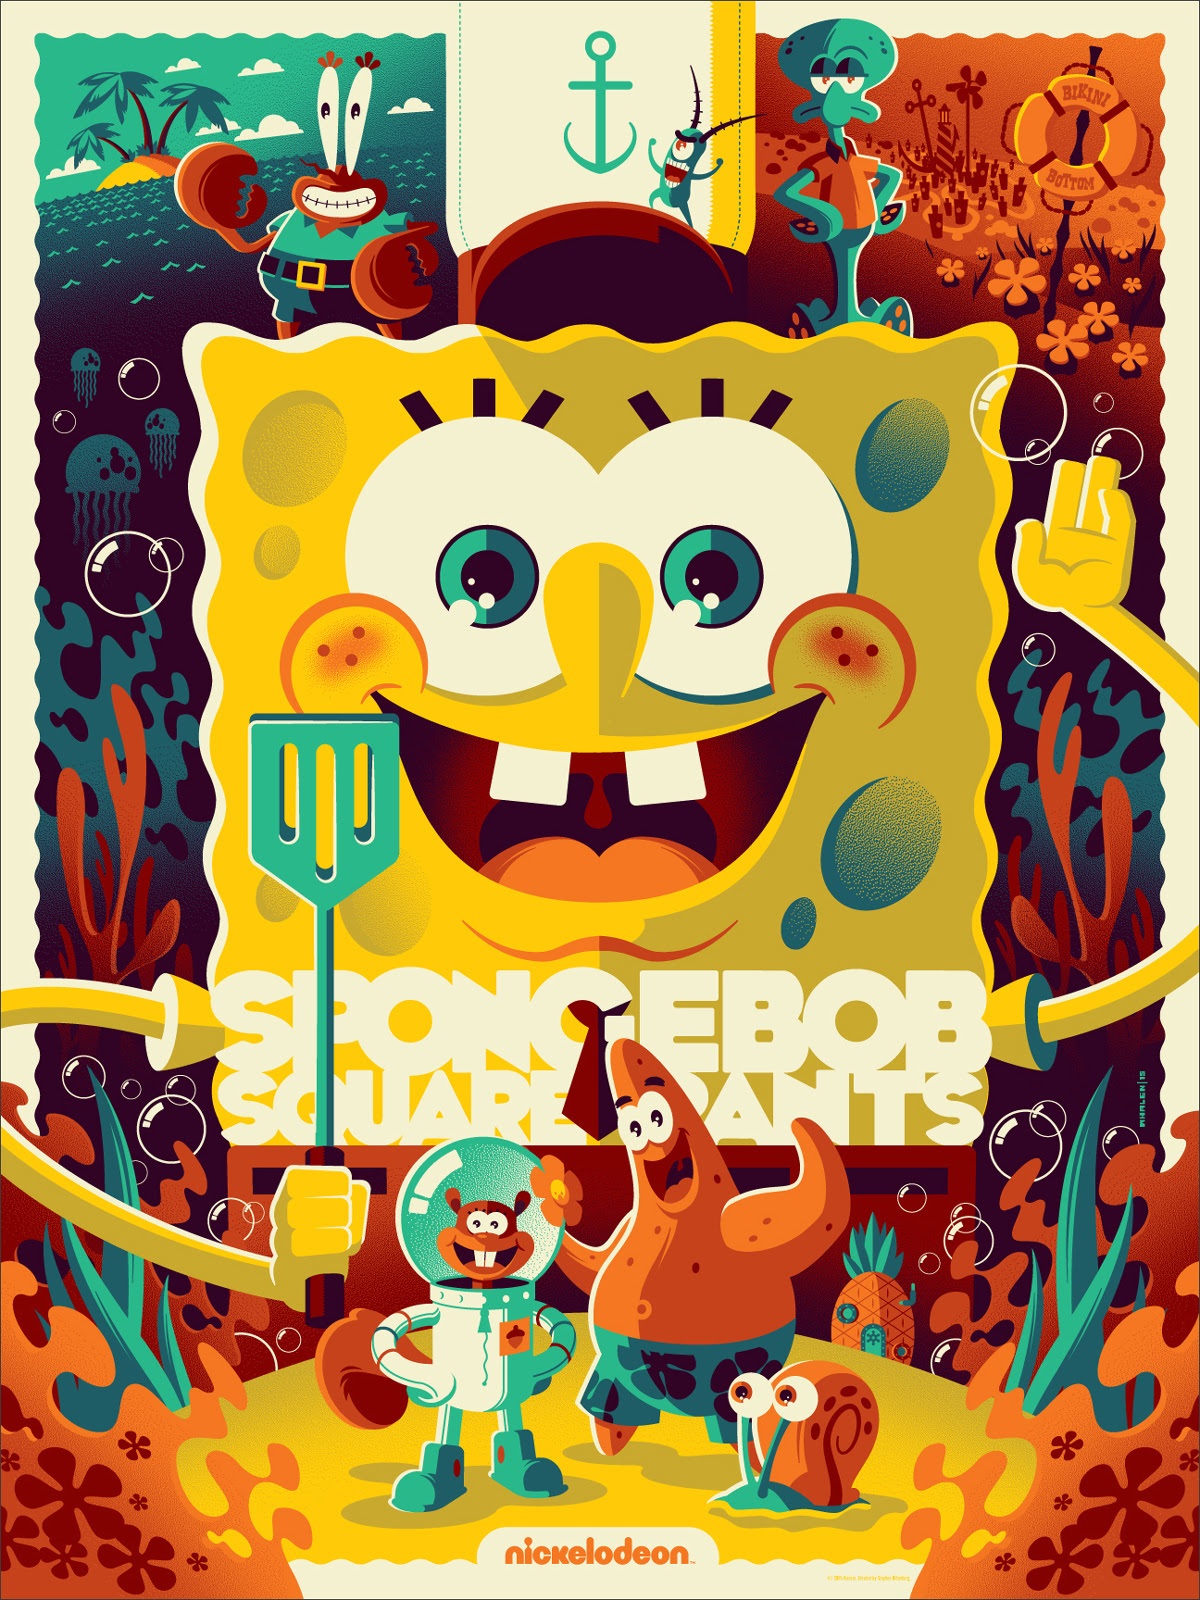 "Spongebob Squarepants by Tom Whalen. 18""x24"" screen print. Hand numbered. Edition of 350. Printed by D&L Screenprinting. $40"